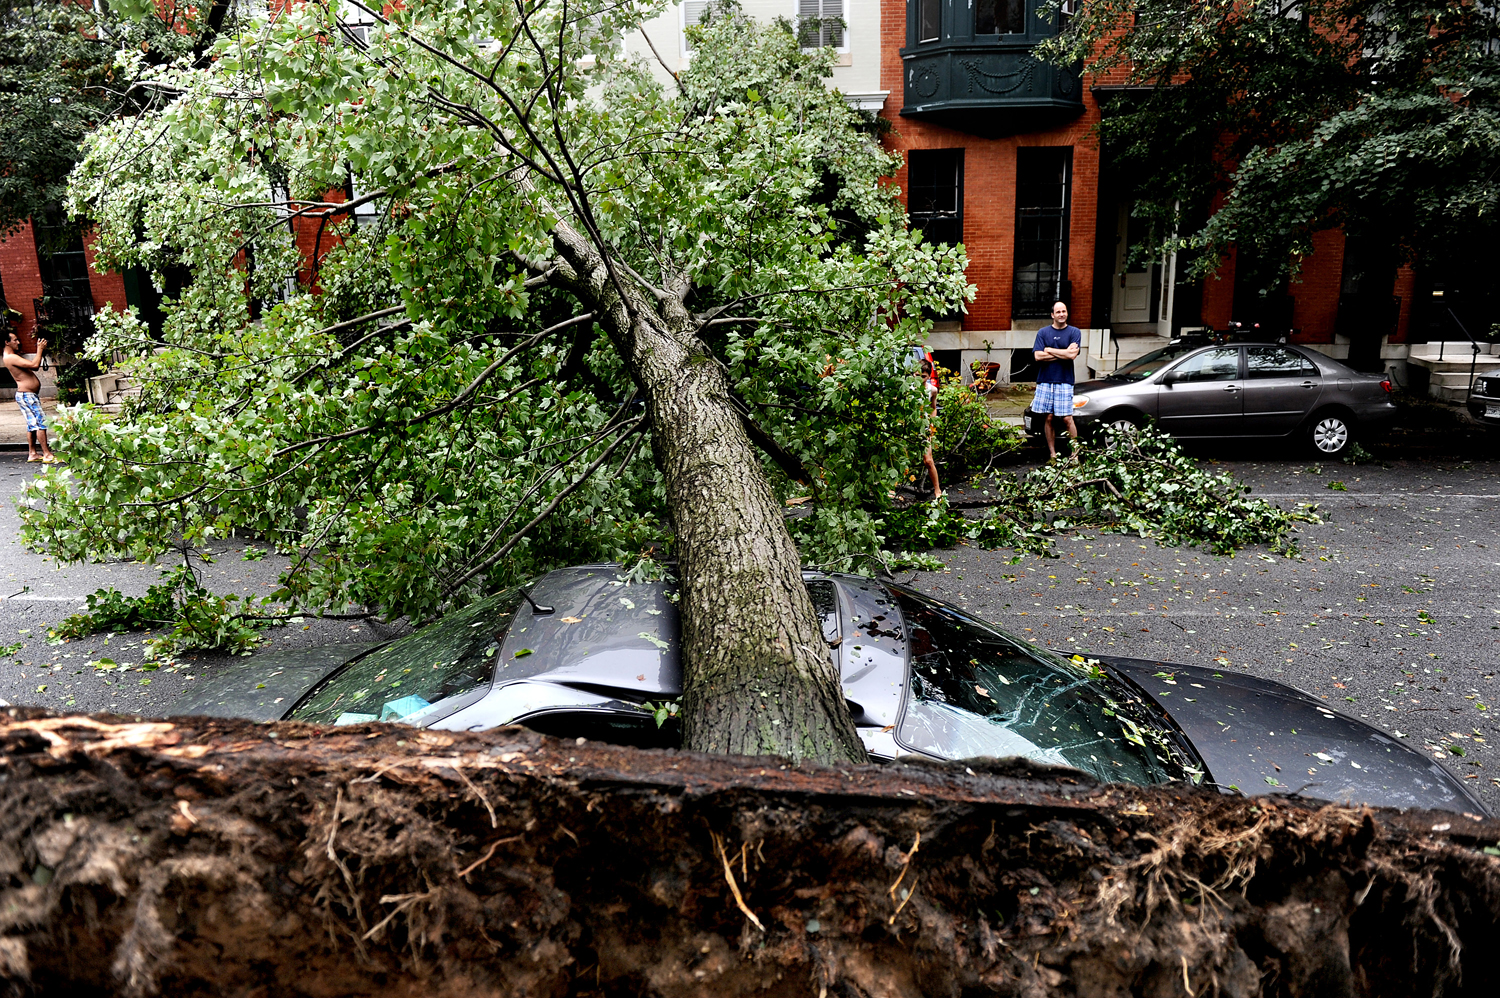 August 28, Baltimore, MD. Neighbors inspect a scene where a large tree crushed a car in Baltimore.